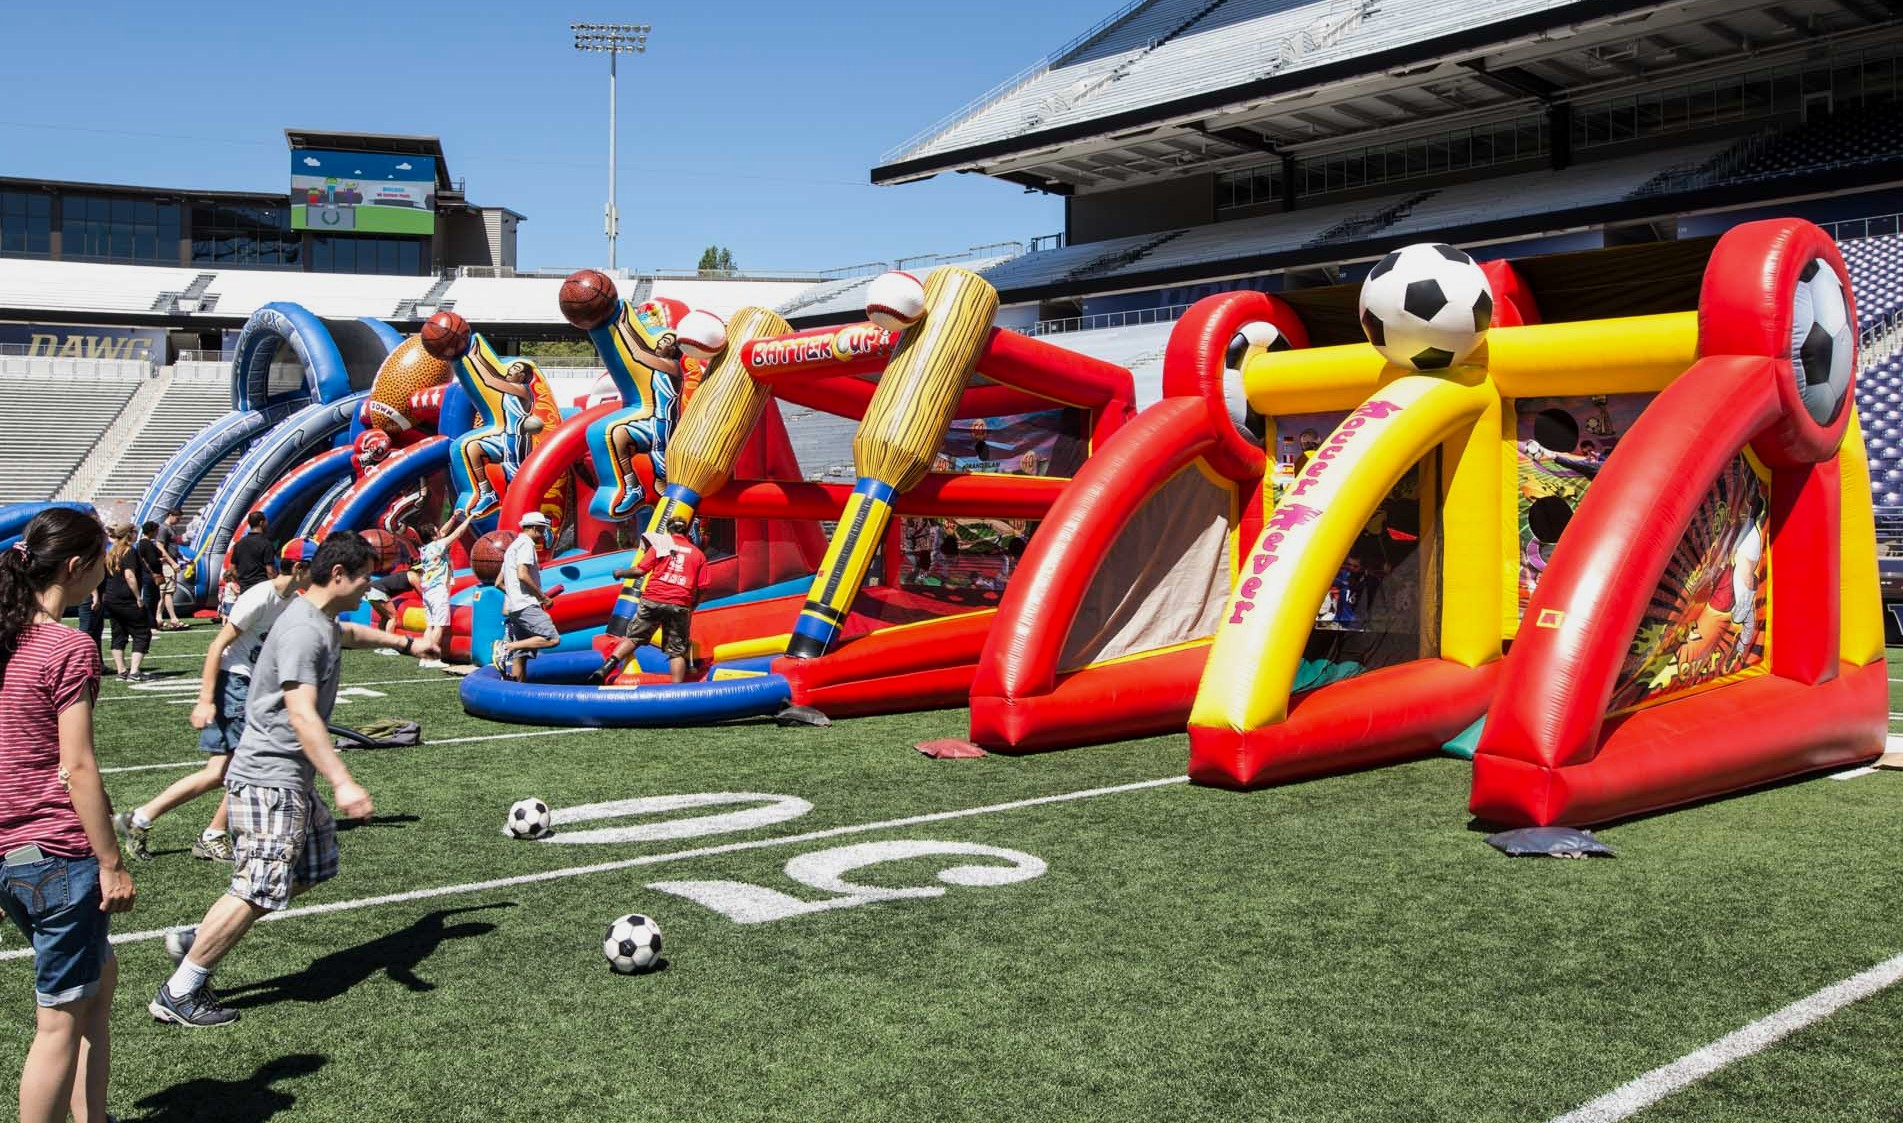 Soccer Ball Goal Kick Inflatable Game Rental National